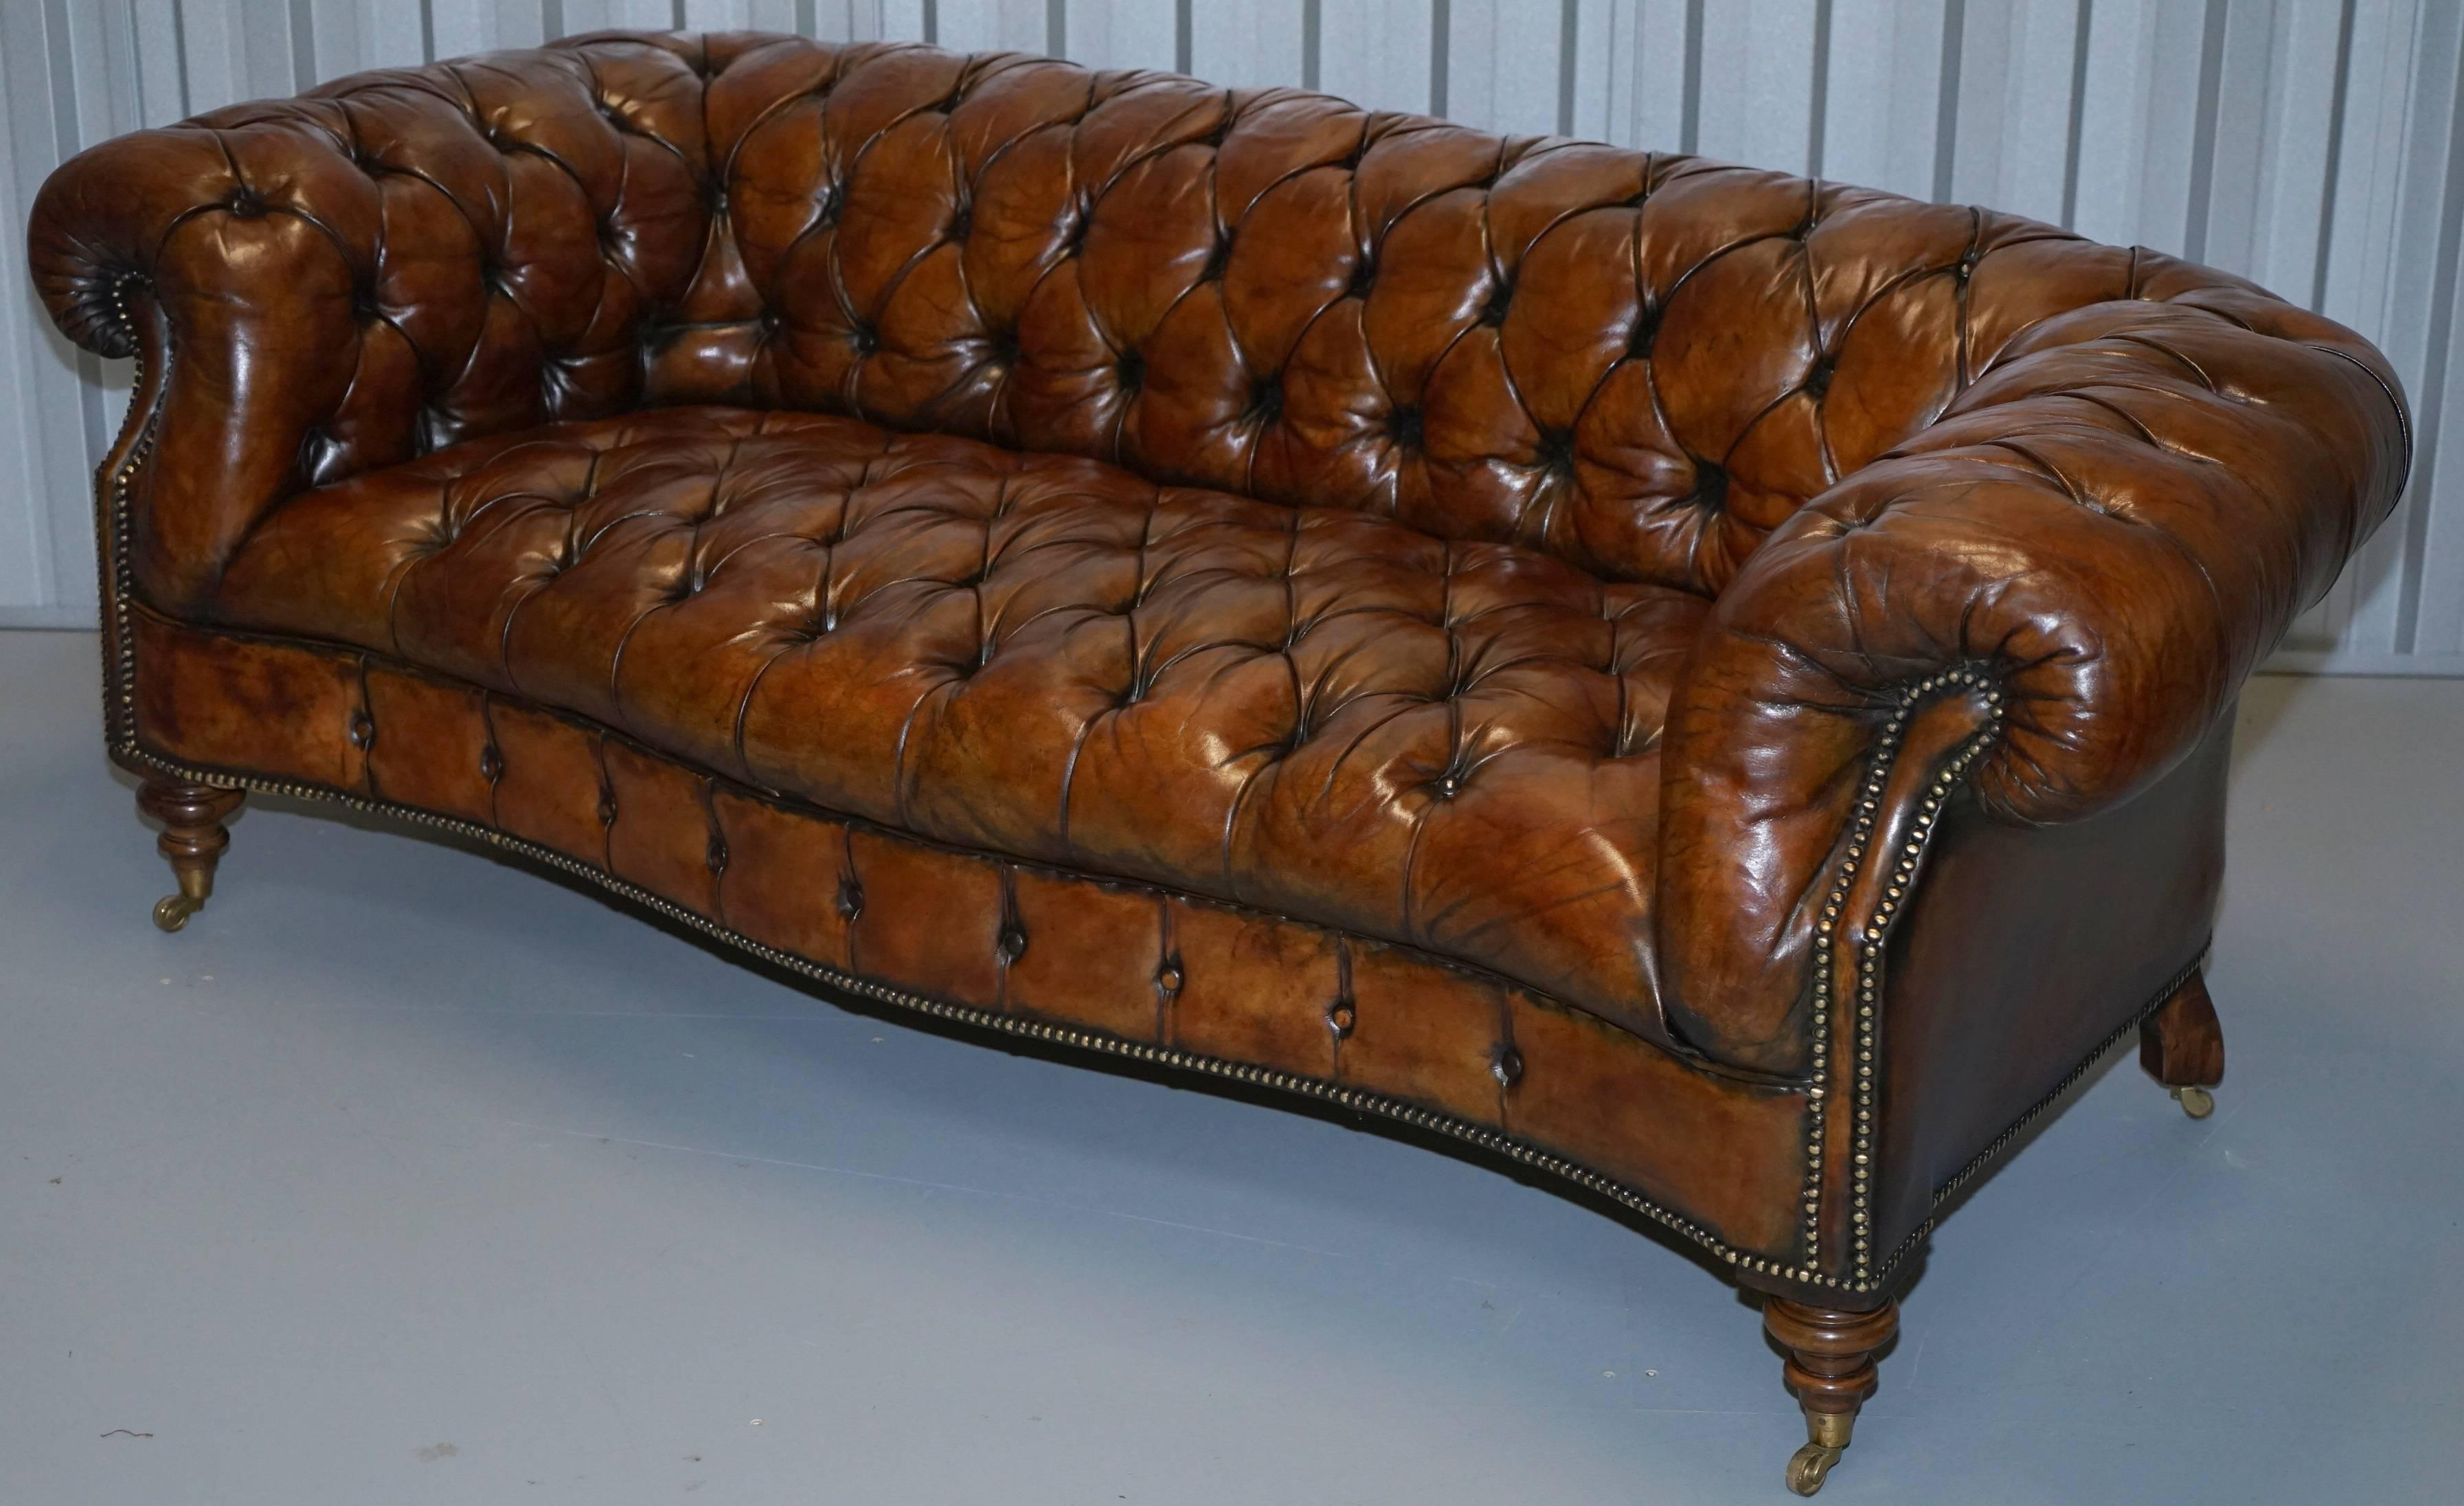 Great Britain (UK) Pair Of Fully Restored Howard U0026 Sonu0027s Style Victorian Chesterfield  Leather